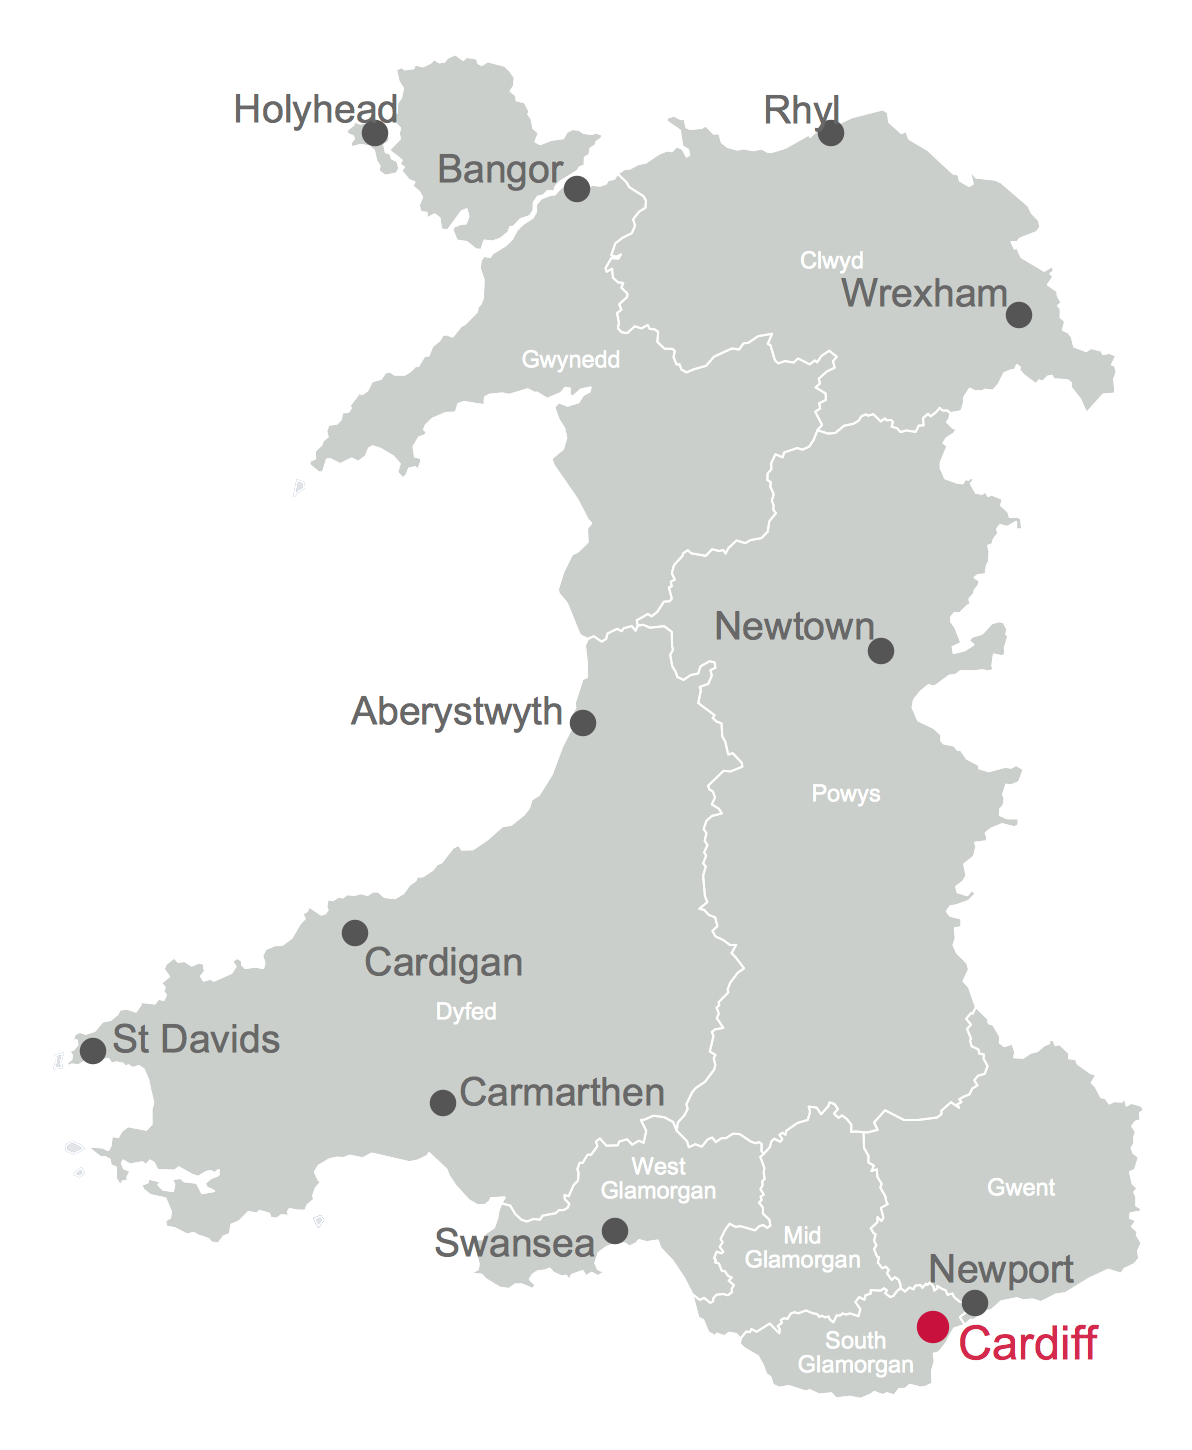 Map of Cities and Towns in Wales